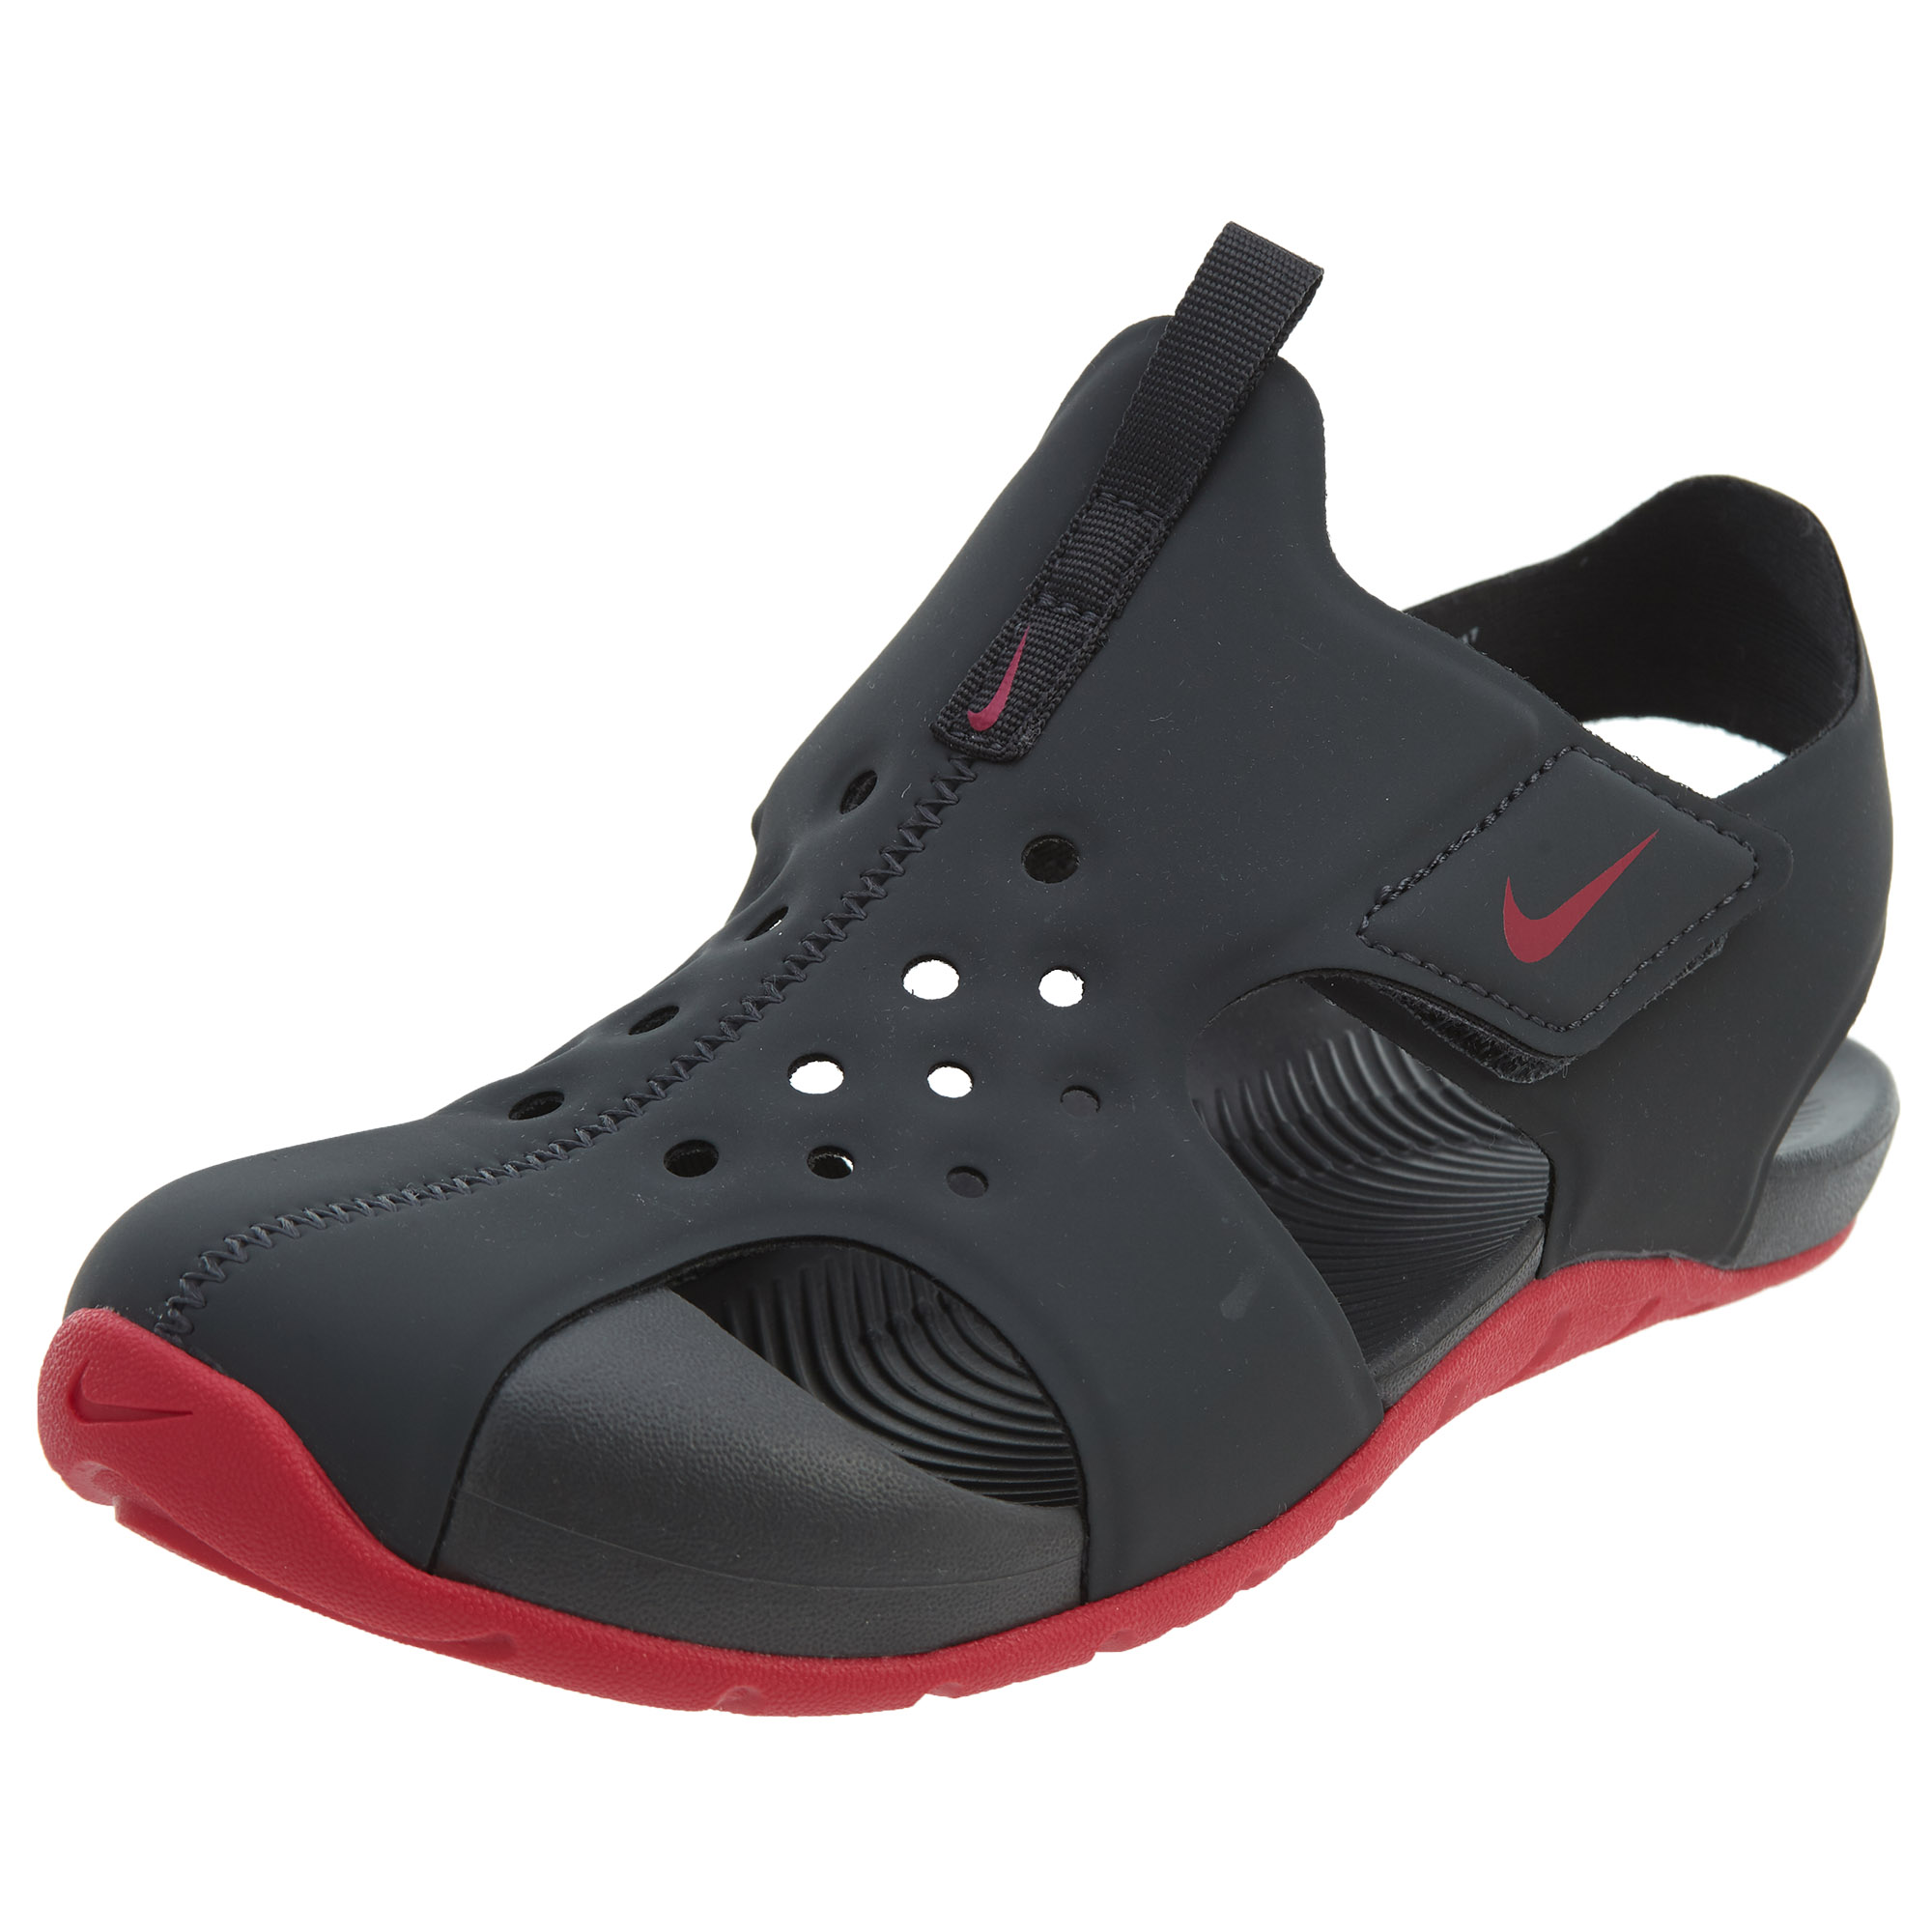 cef1a8ca1059 Details about Nike Little Kids Sunray Protect 2 Sandals 943828-001